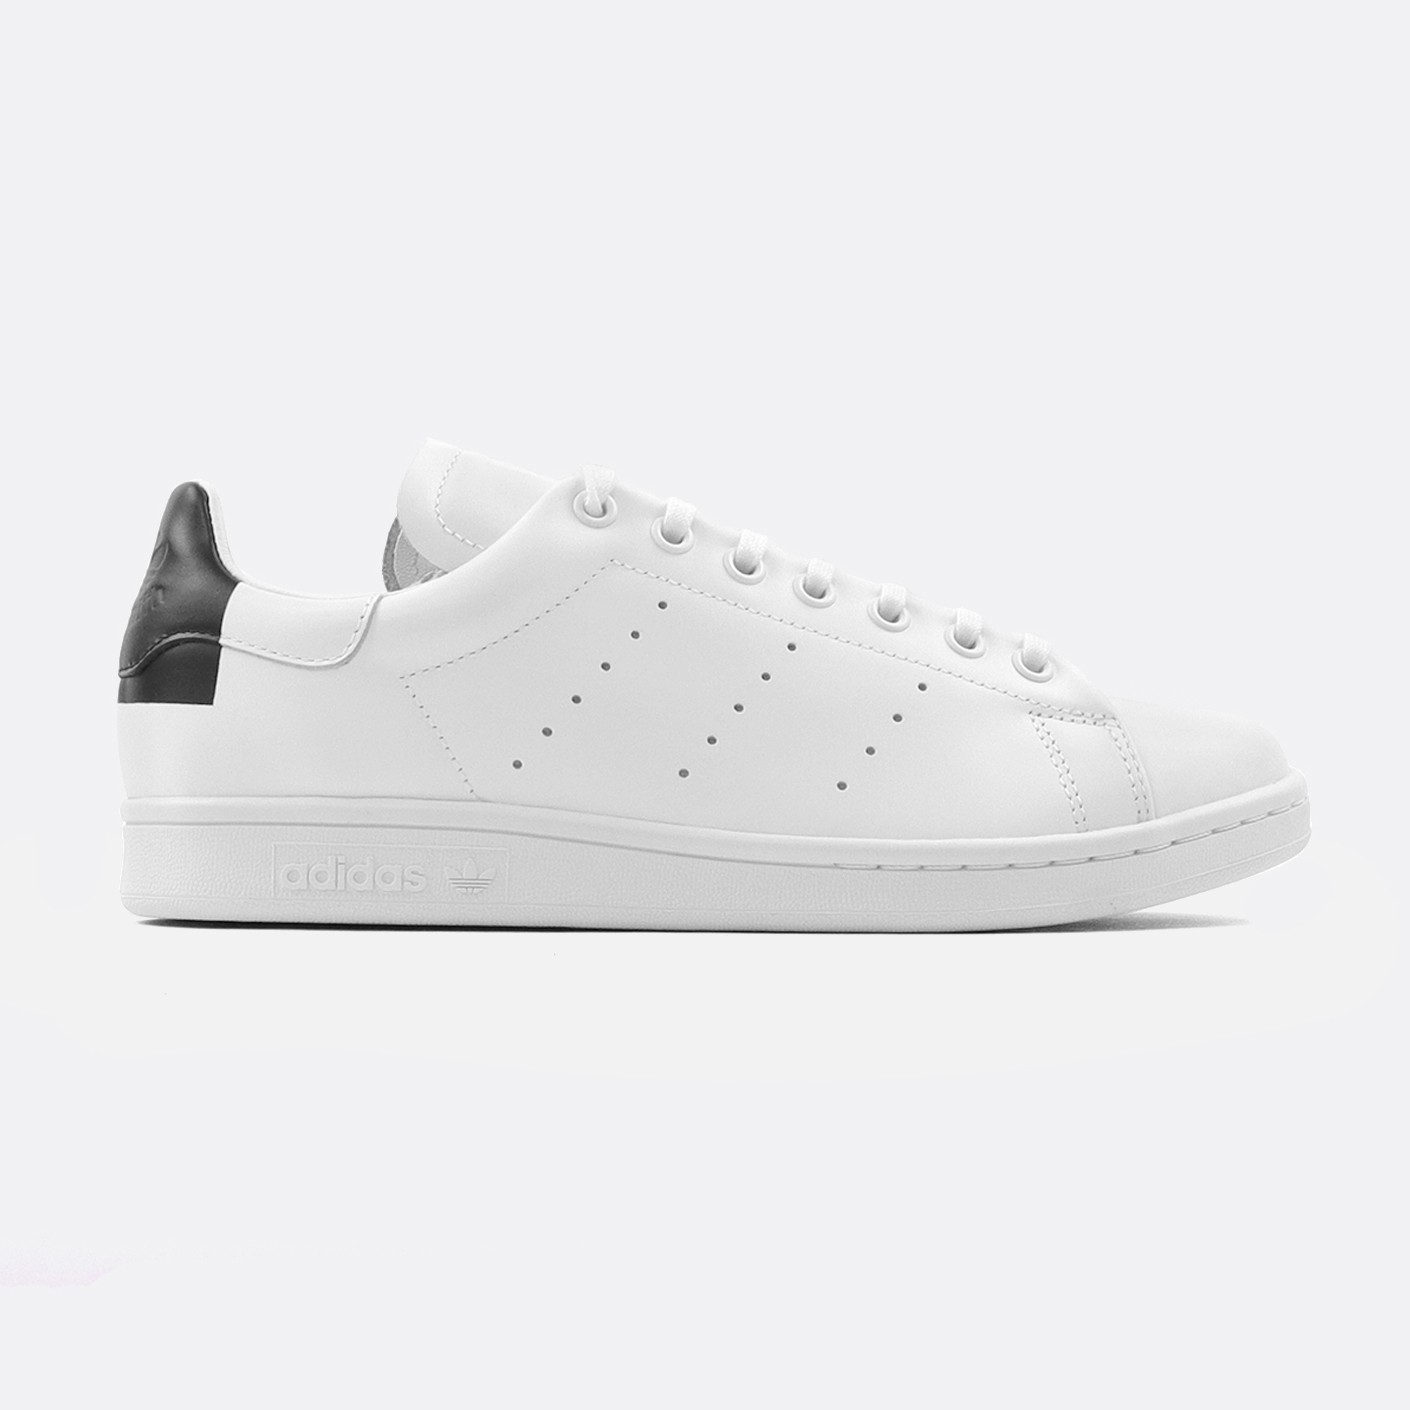 new style a60ad 703f8 ADIDAS STAN SMITH RECON WHITE/CORE BLACK EE5785